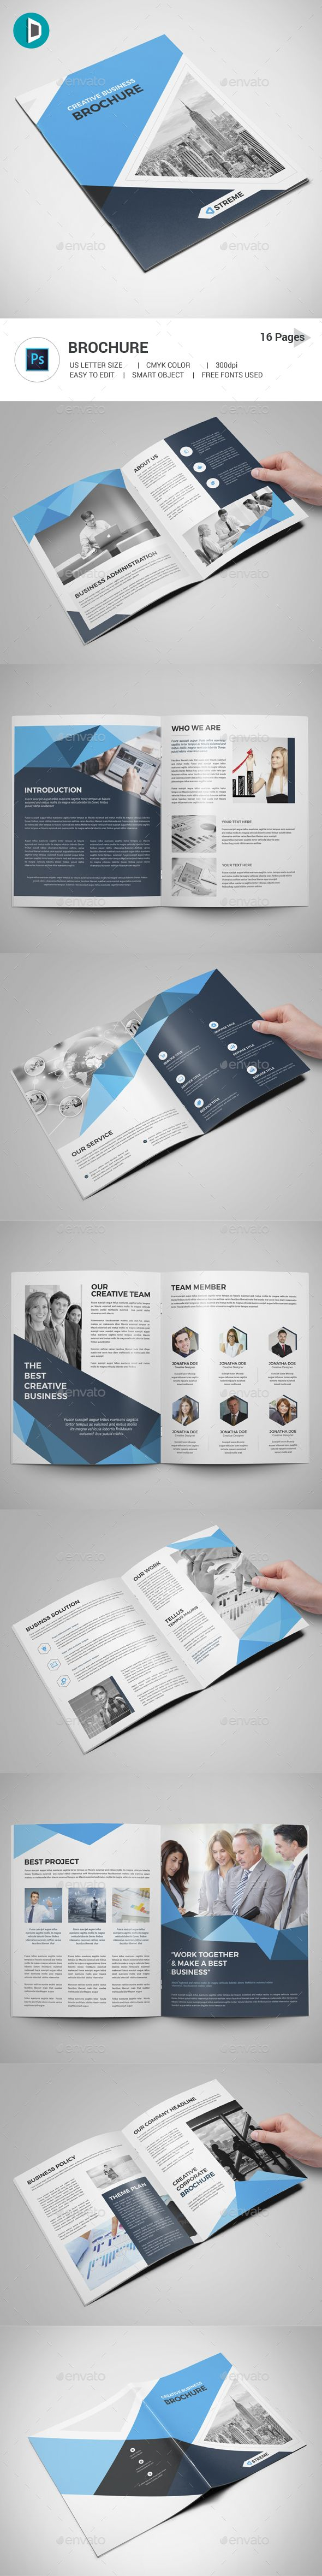 #Brochure - #Corporate Brochures Download here: https://graphicriver.net/item/brochure/19458943?ref=alena994